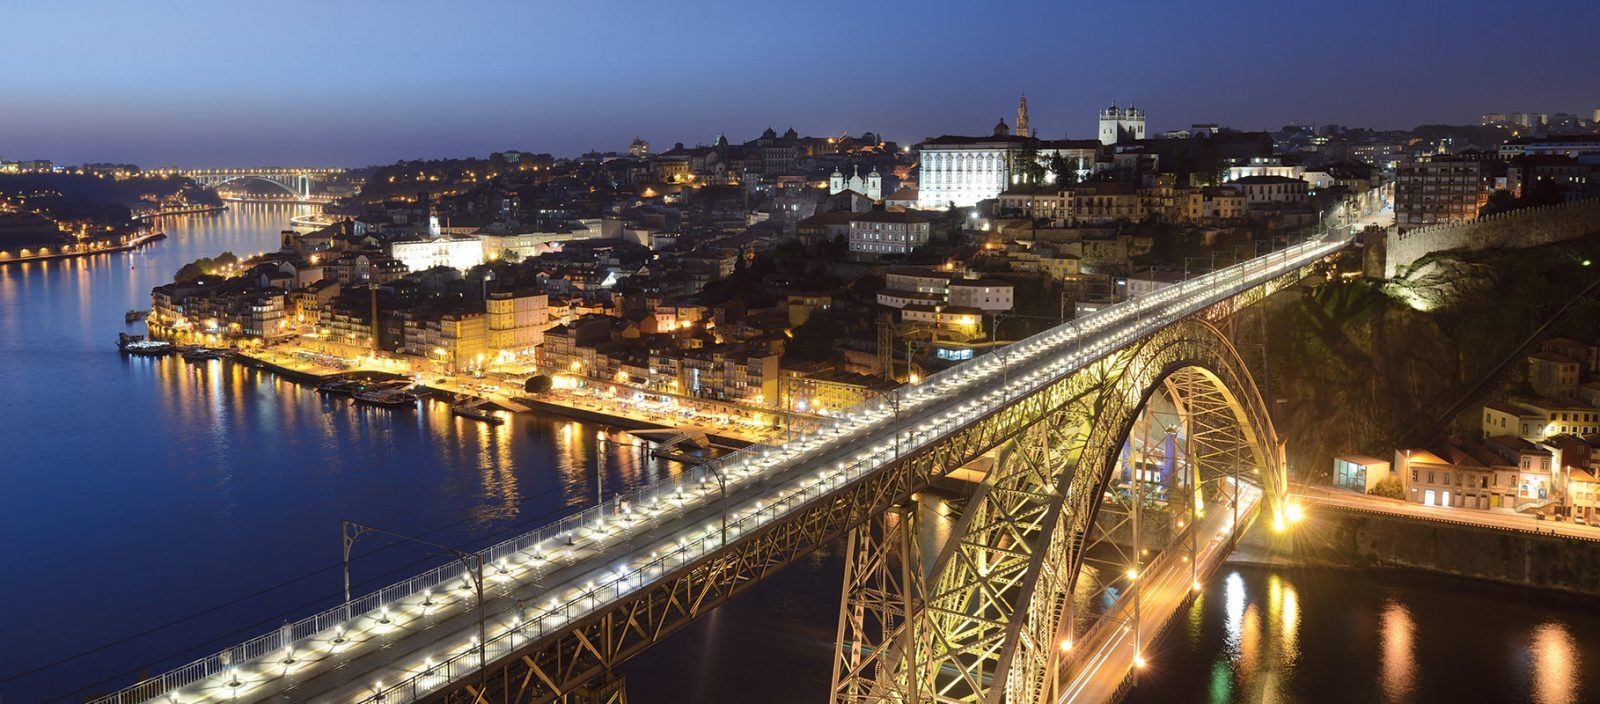 Douro River Cruise: Into the Heart of Portugal